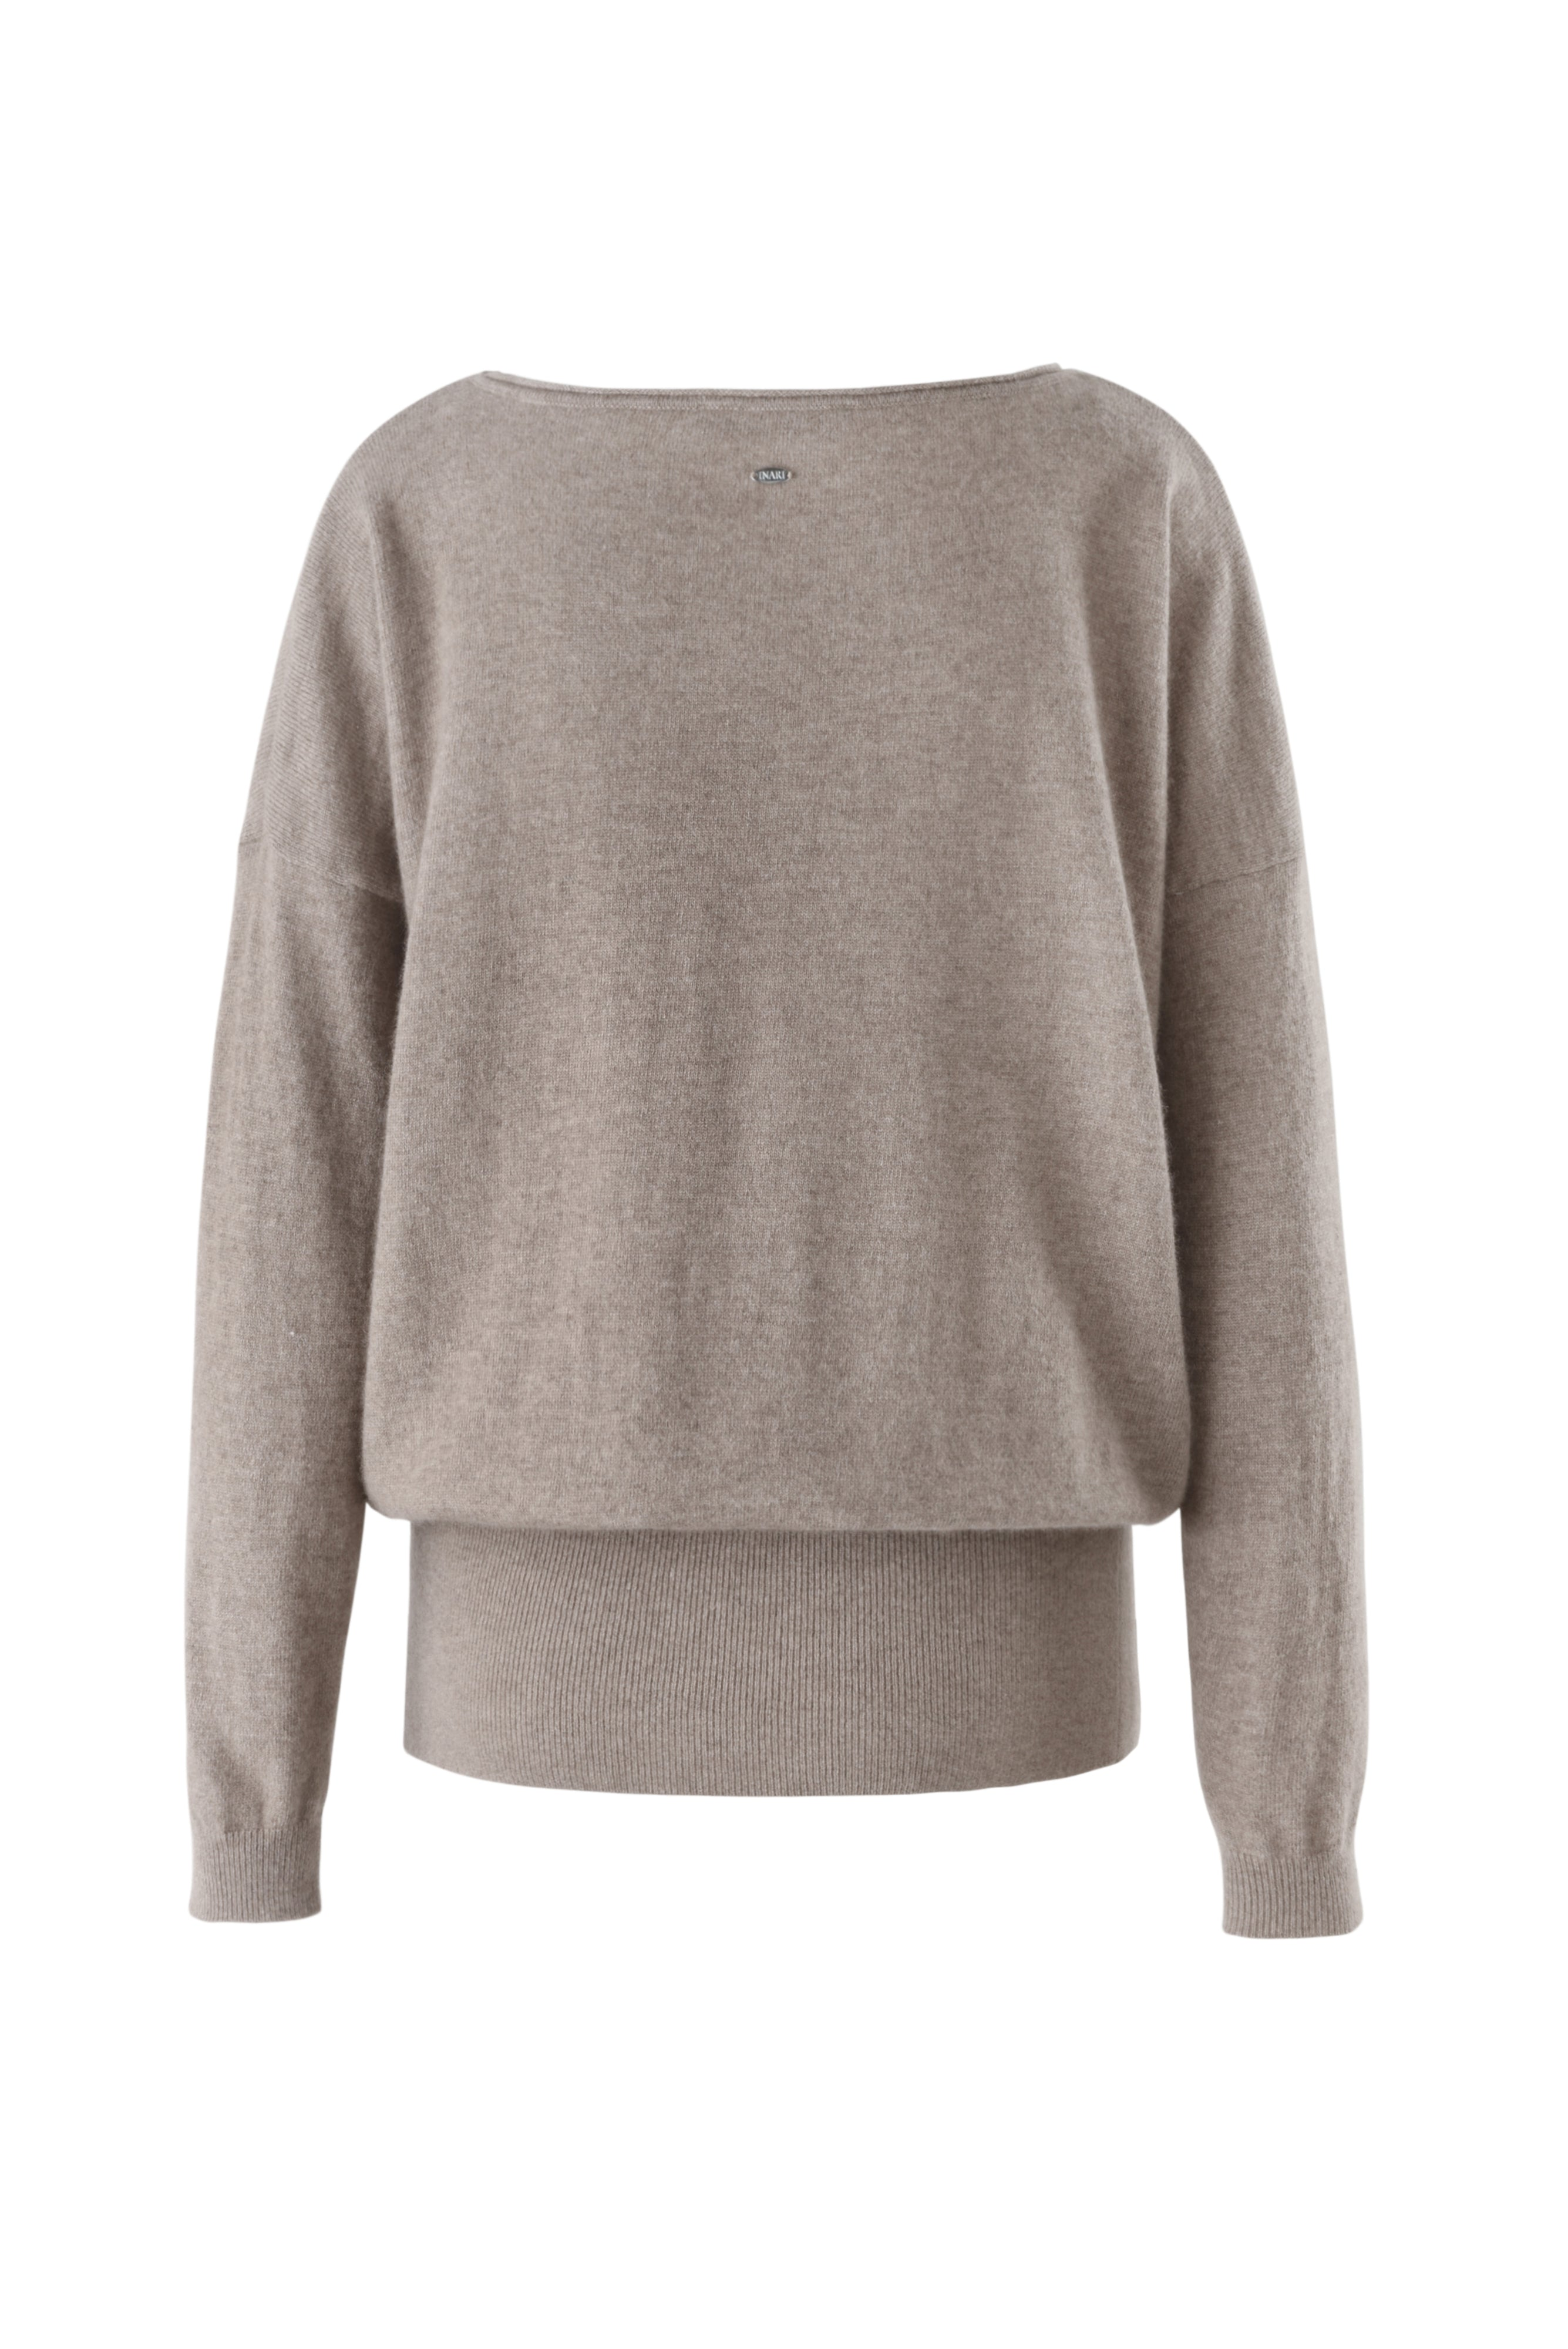 Inari Women's brown cashmere O-neck sweater - back side - 100% high-quality cashmere